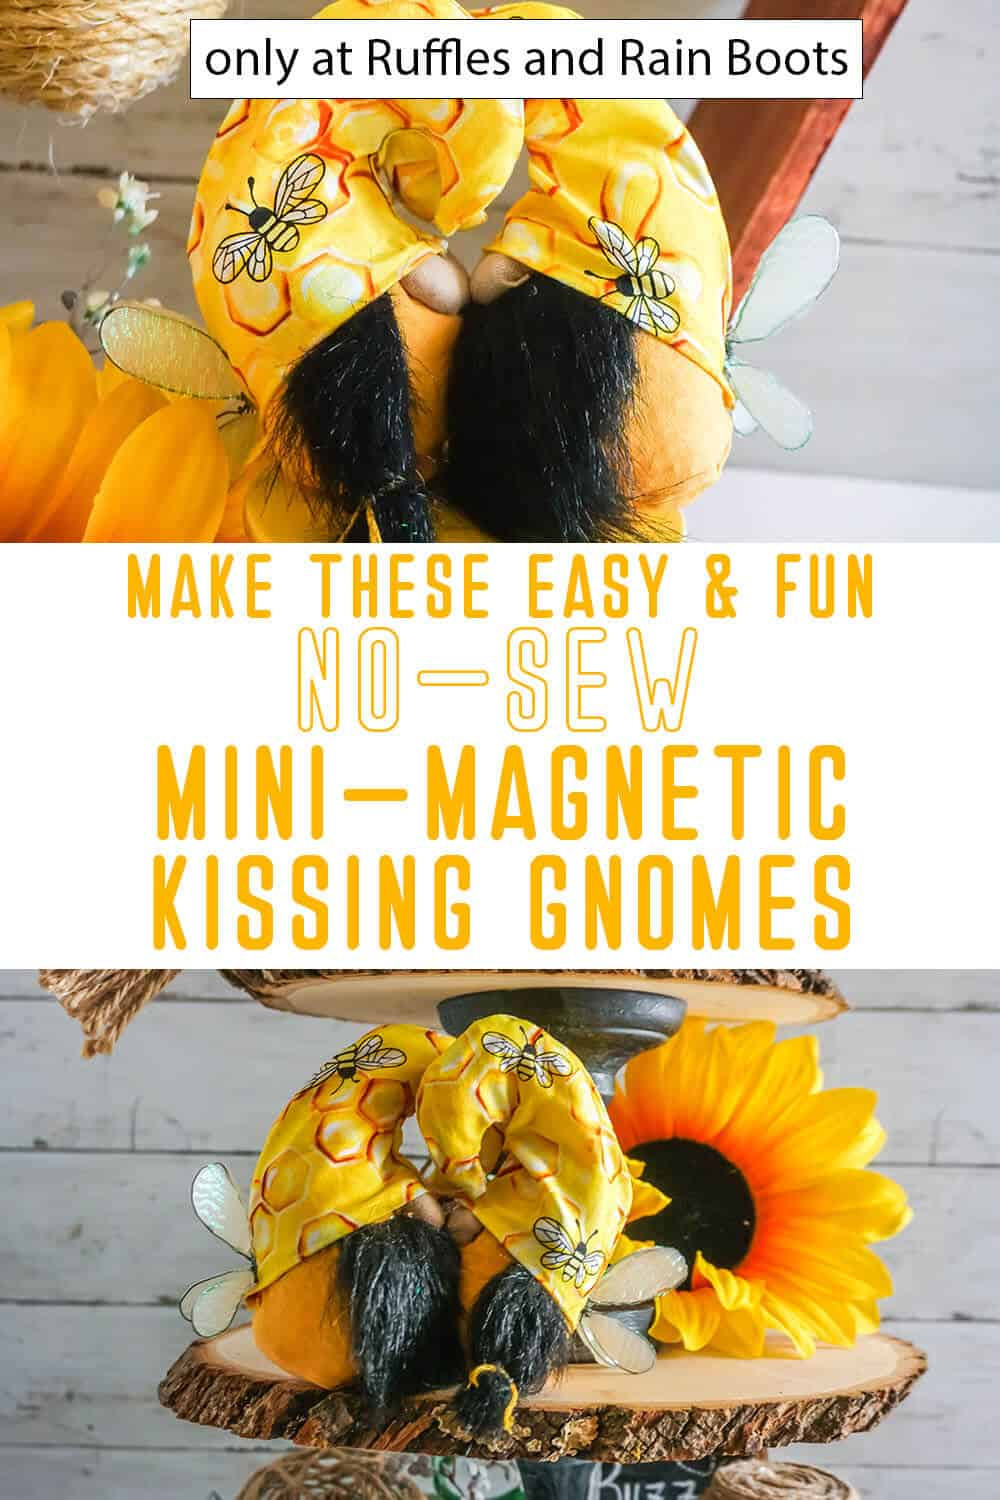 photo collage of mini magnetic kissing bee gnomes with text which reads make these easy & fun no-sew mini-magnetic kissing gnomes